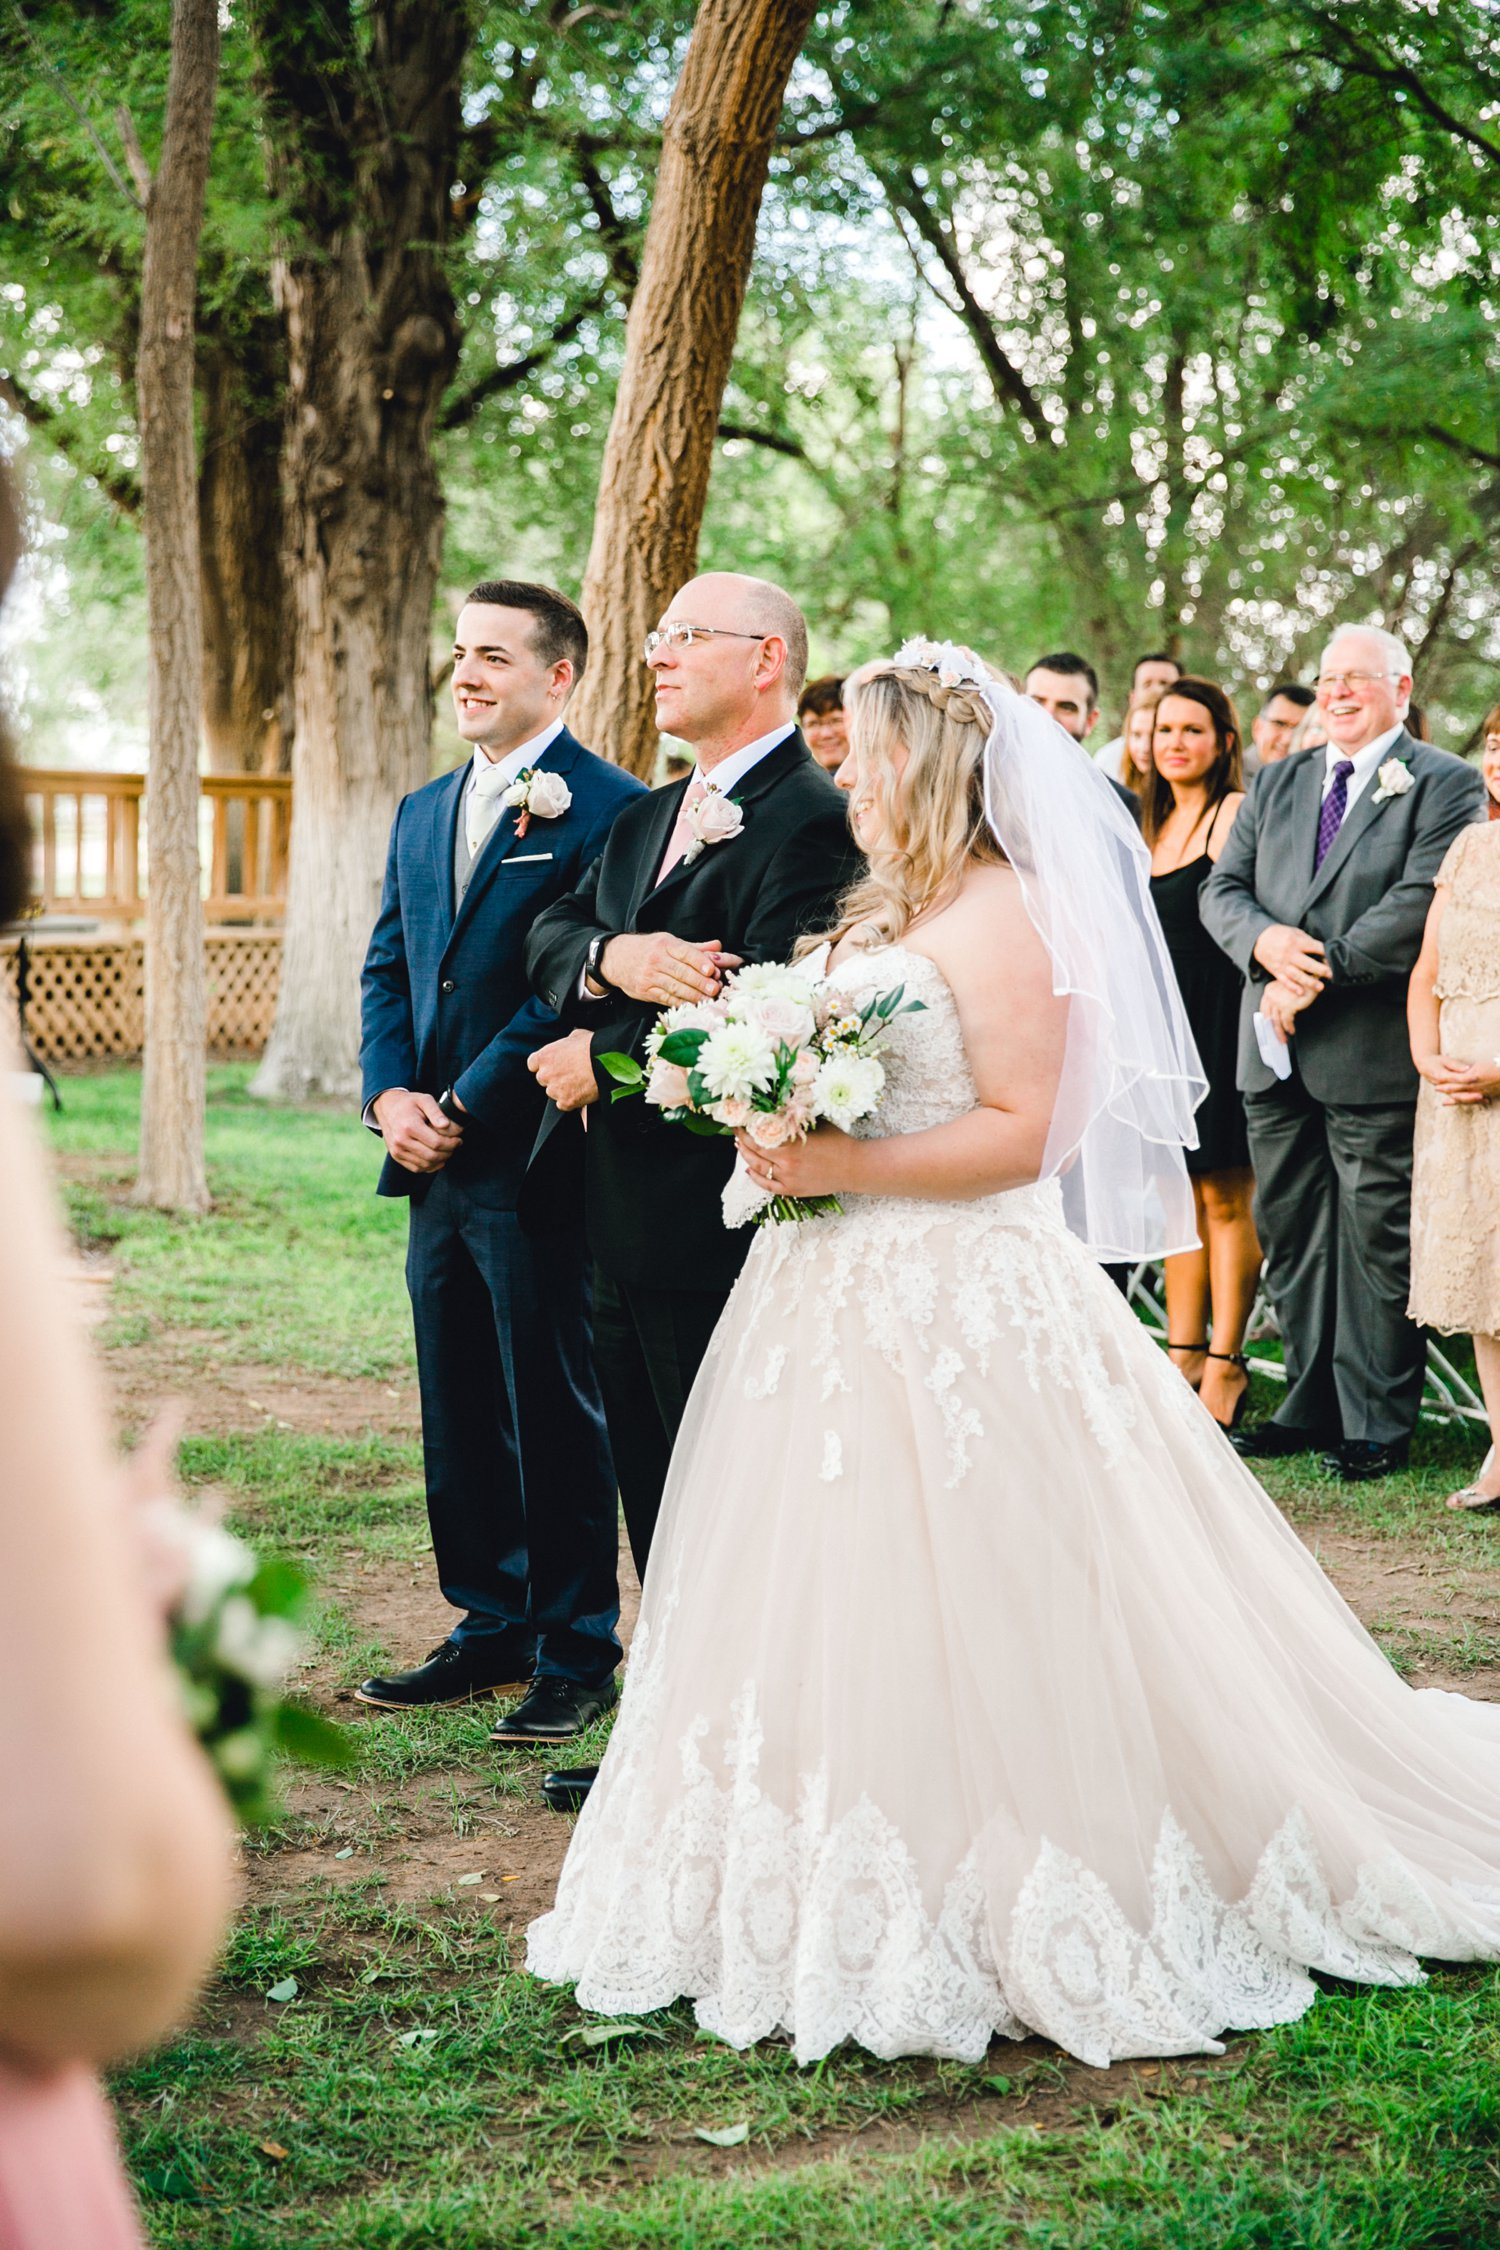 SARAH_AND_GEOFFREY_SHARP_SPIRIT_RANCH_WEDDING_ALLEEJ_LUBBOCK_TX_0040.jpg